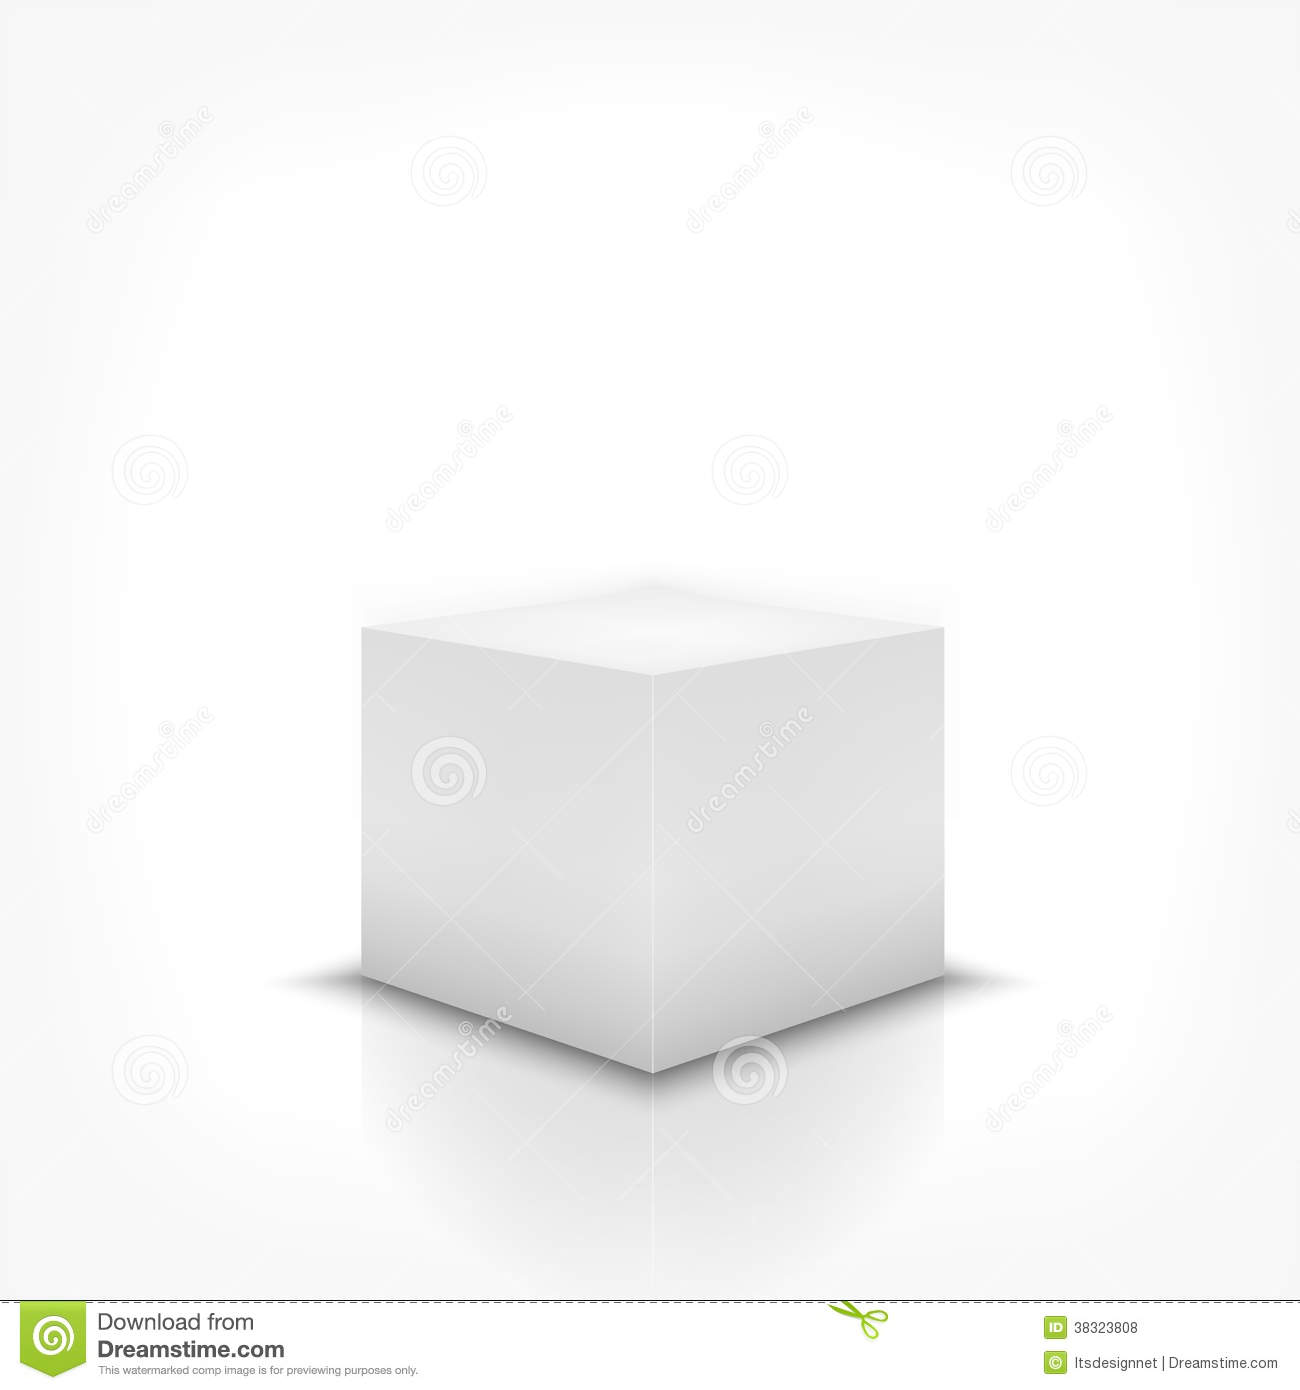 Box Stand Royalty Free Stock Photos Image 38323808